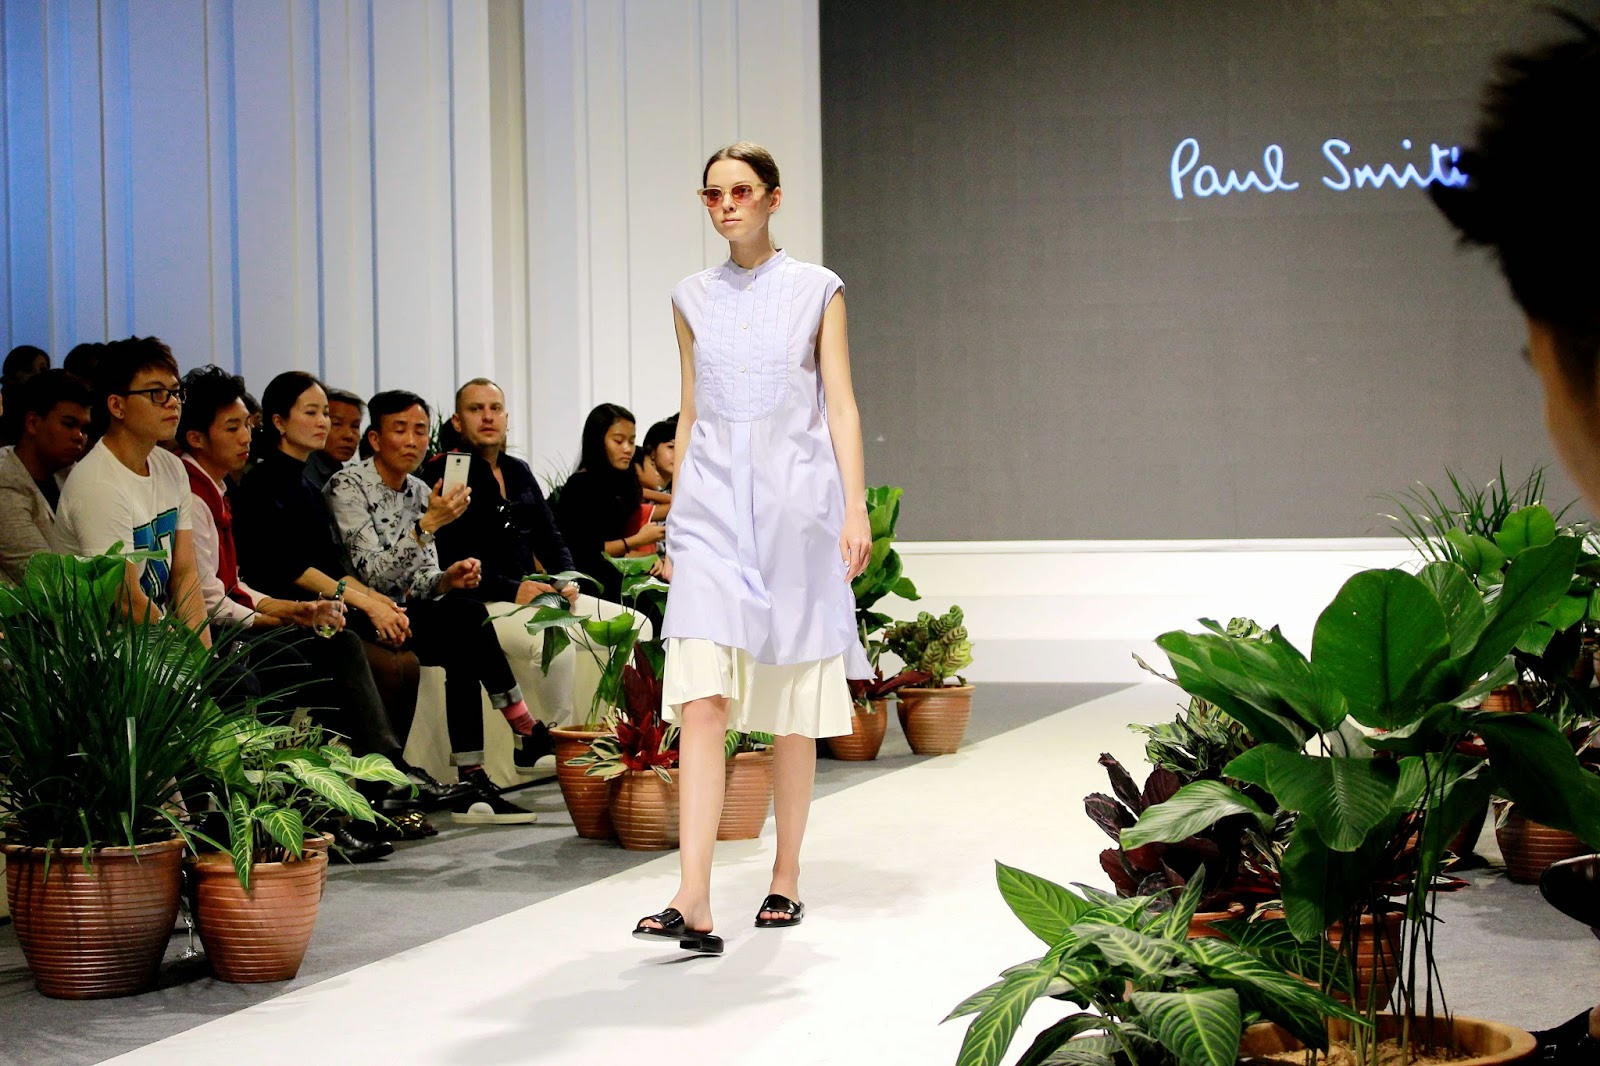 Mr Brian See Paul Smith Spring Summer 2015 Fashion Show Pavilion Pitstop